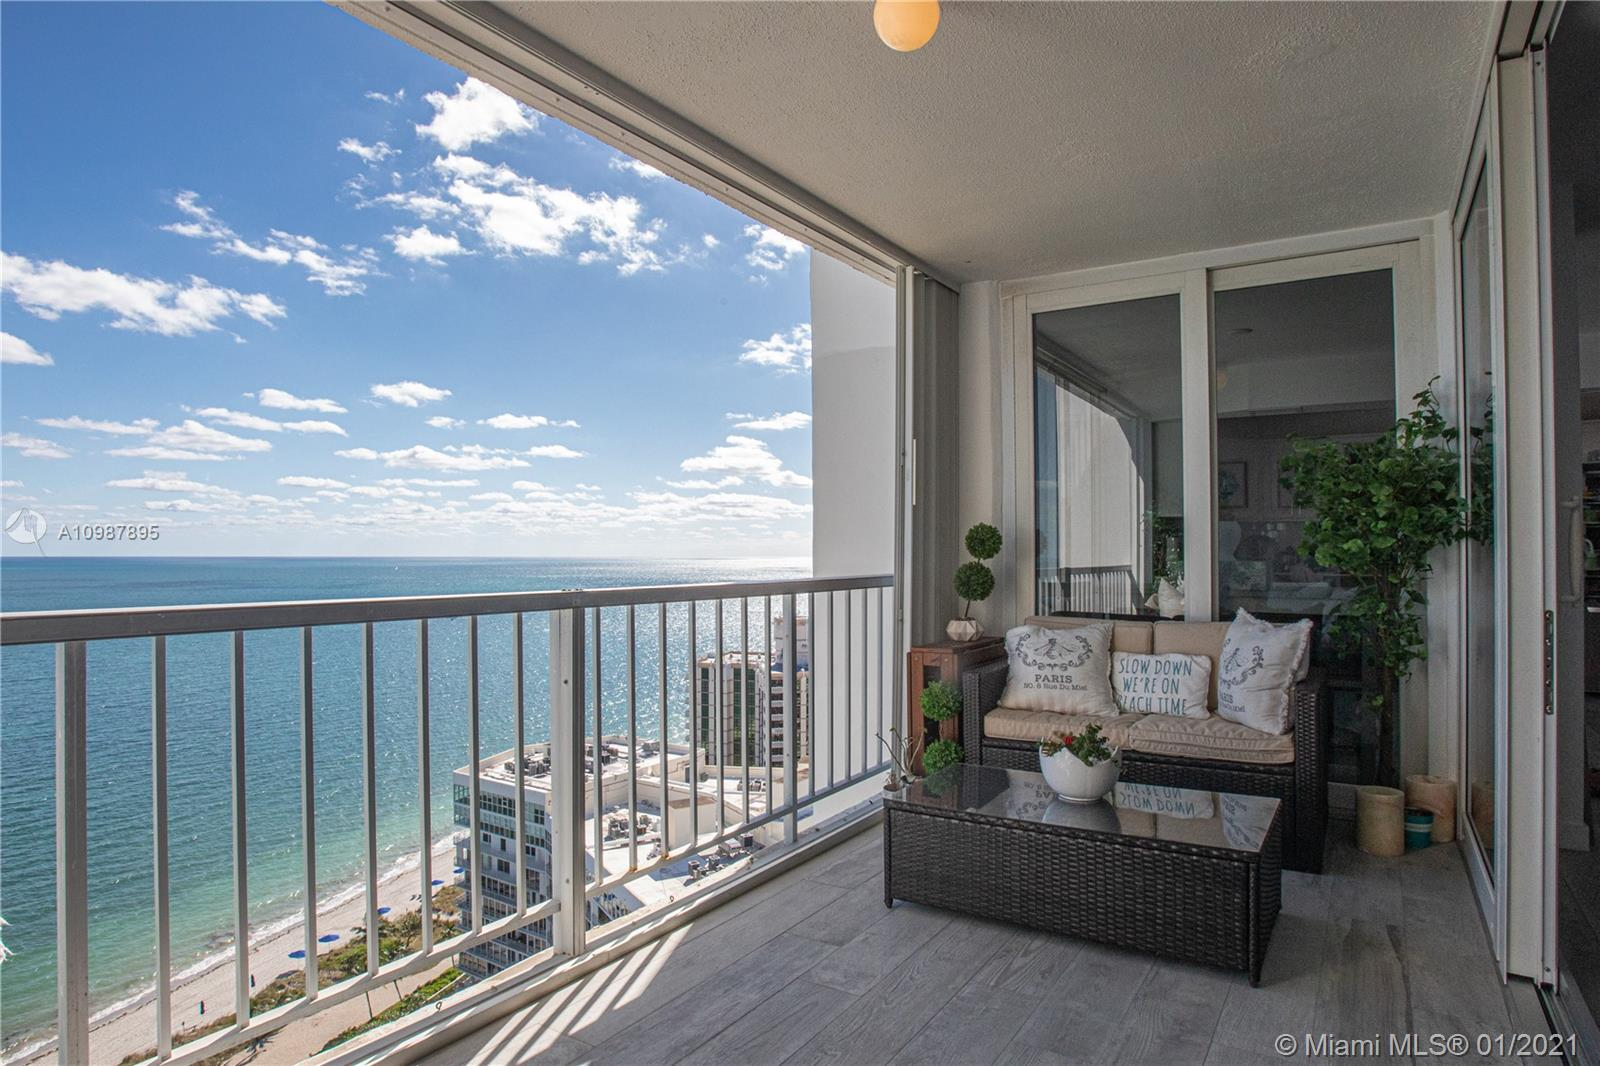 881 Ocean Dr # 22B, Key Biscayne, Florida 33149, 2 Bedrooms Bedrooms, ,2 BathroomsBathrooms,Residential,For Sale,881 Ocean Dr # 22B,A10987895